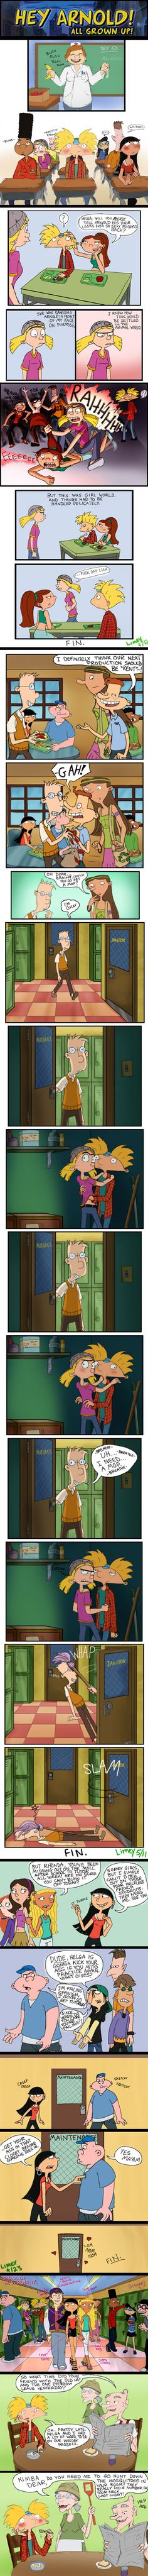 Hey Arnold grown up